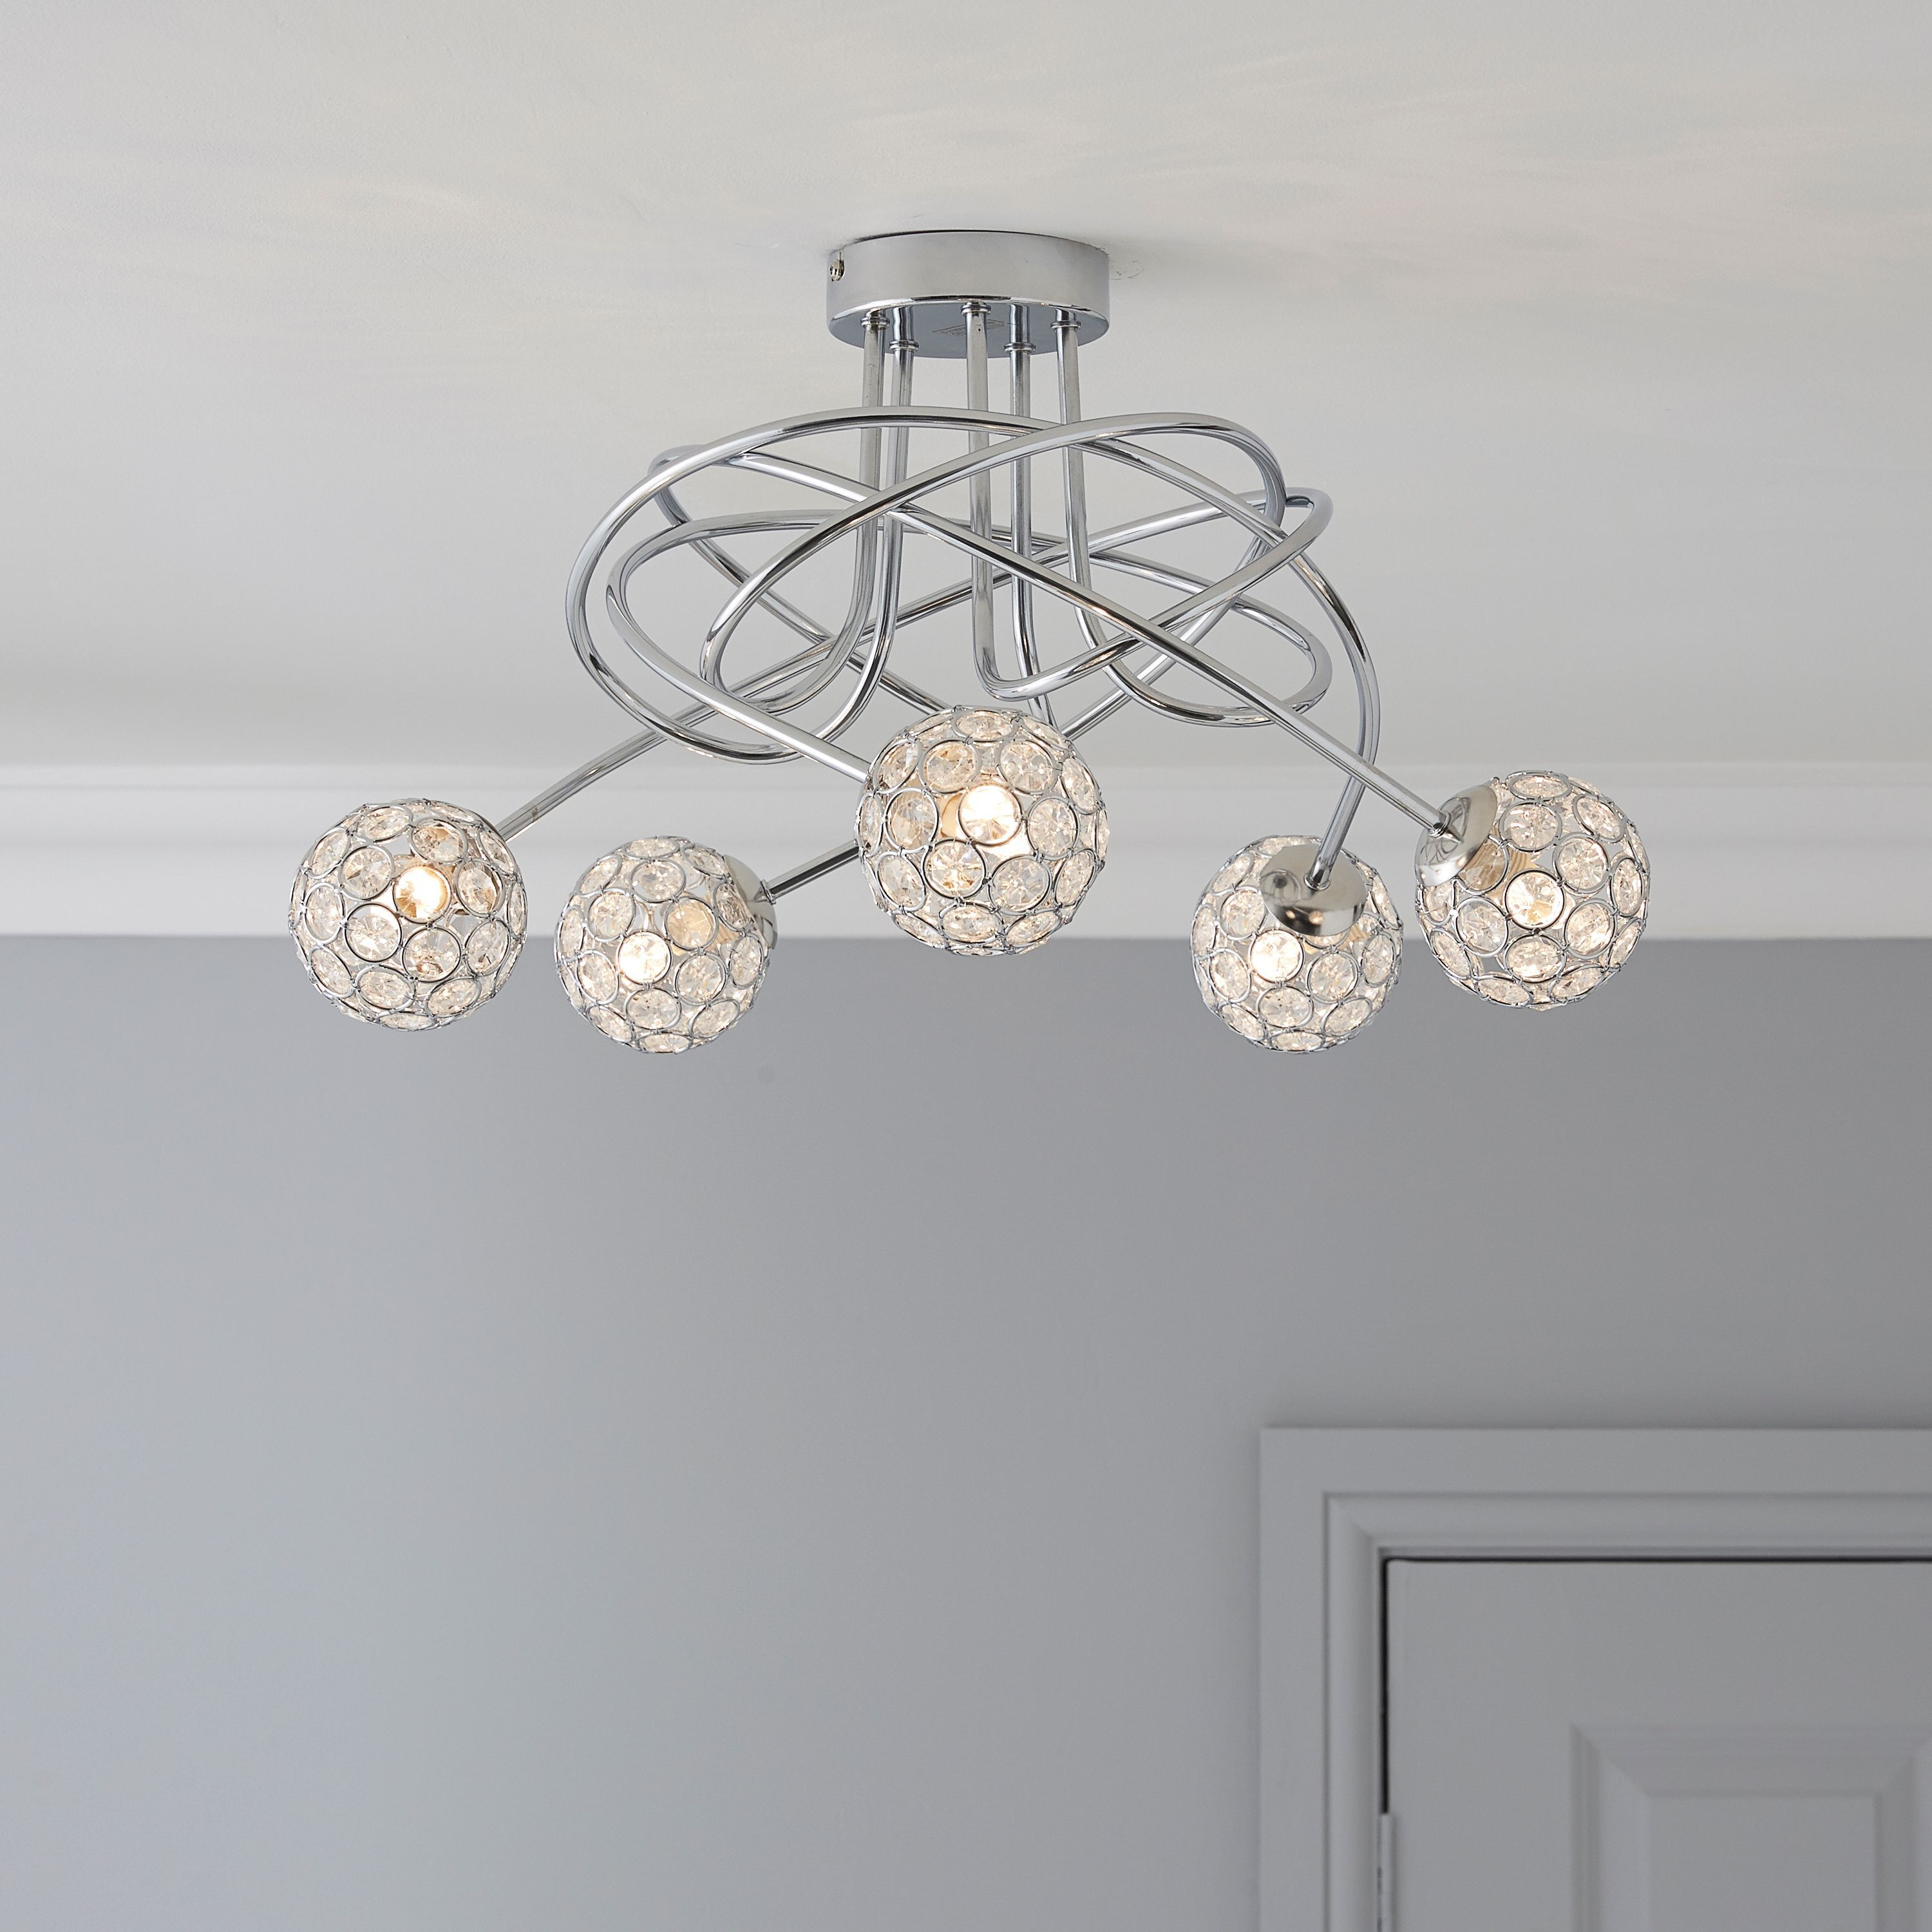 Bathroom Light Fixtures B&Q lopez crystal circle chrome effect 5 lamp ceiling light | living